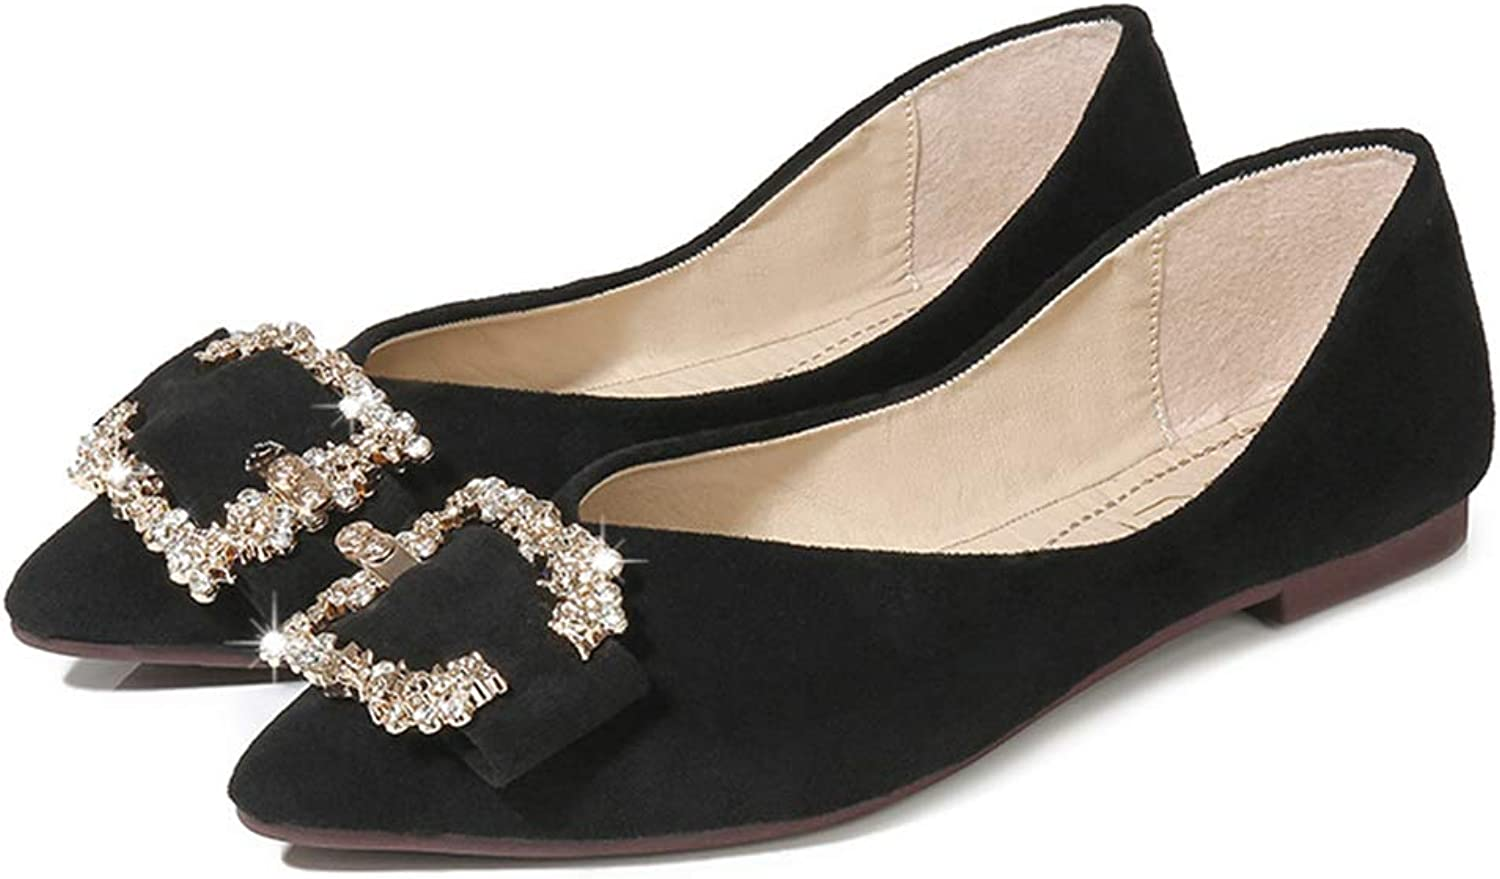 Kyle Walsh Pa Women Flats shoes Ladies Fashion Casual Soft Working Driving Moccasins Footwear